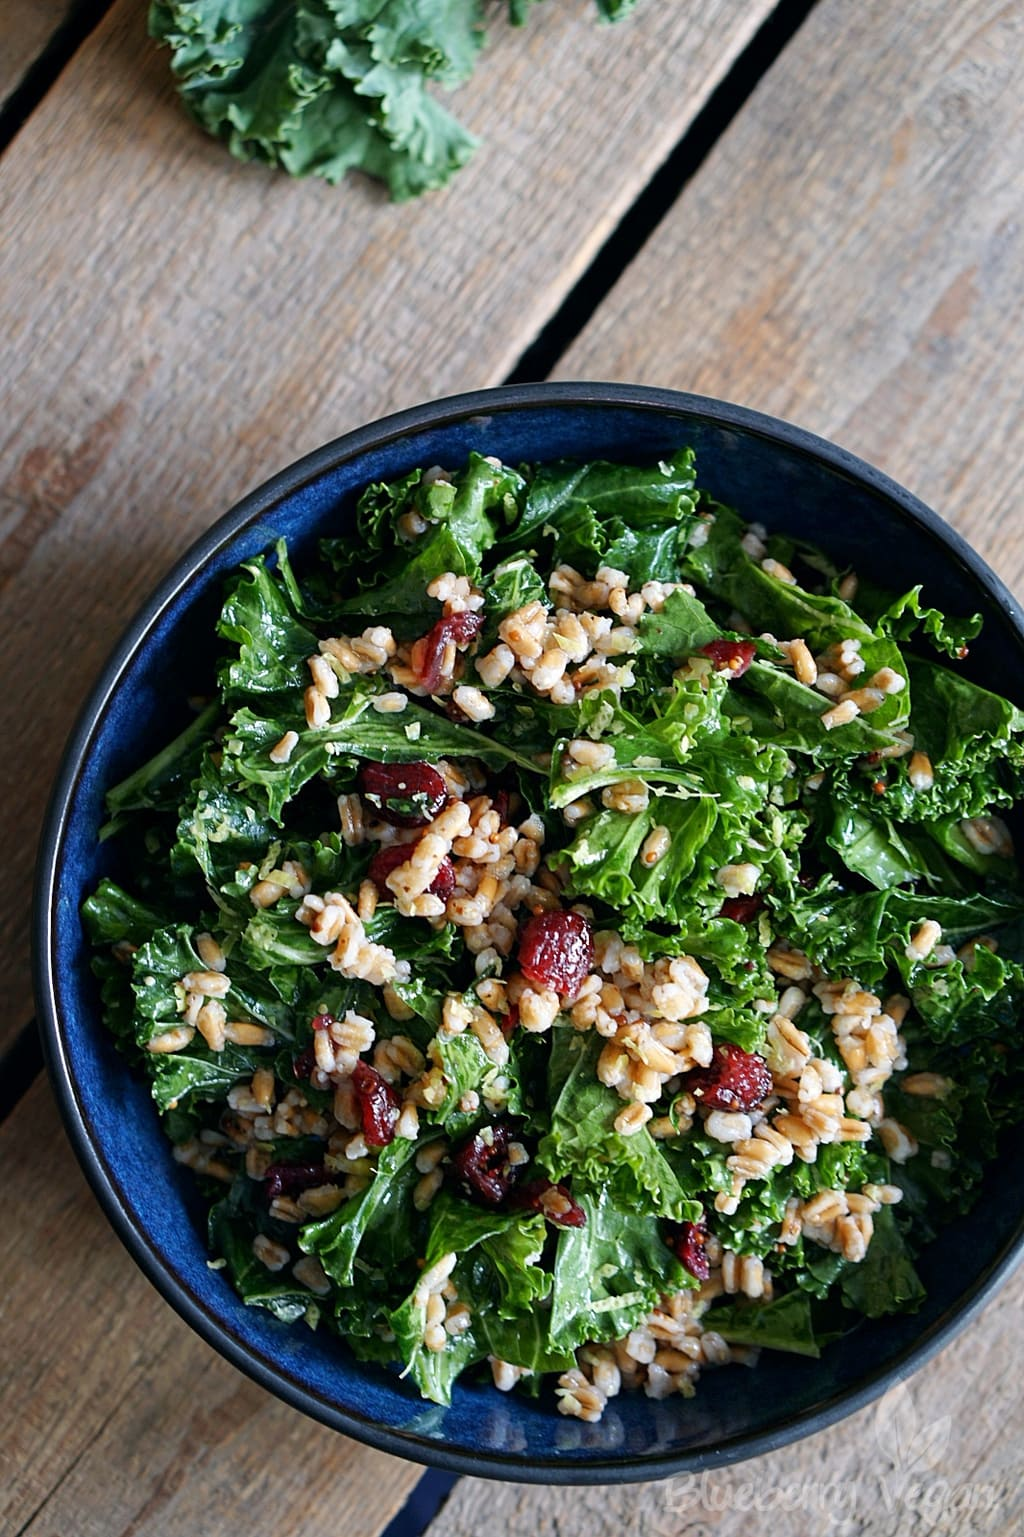 Warm Kale Salad with Grains and Cranberries